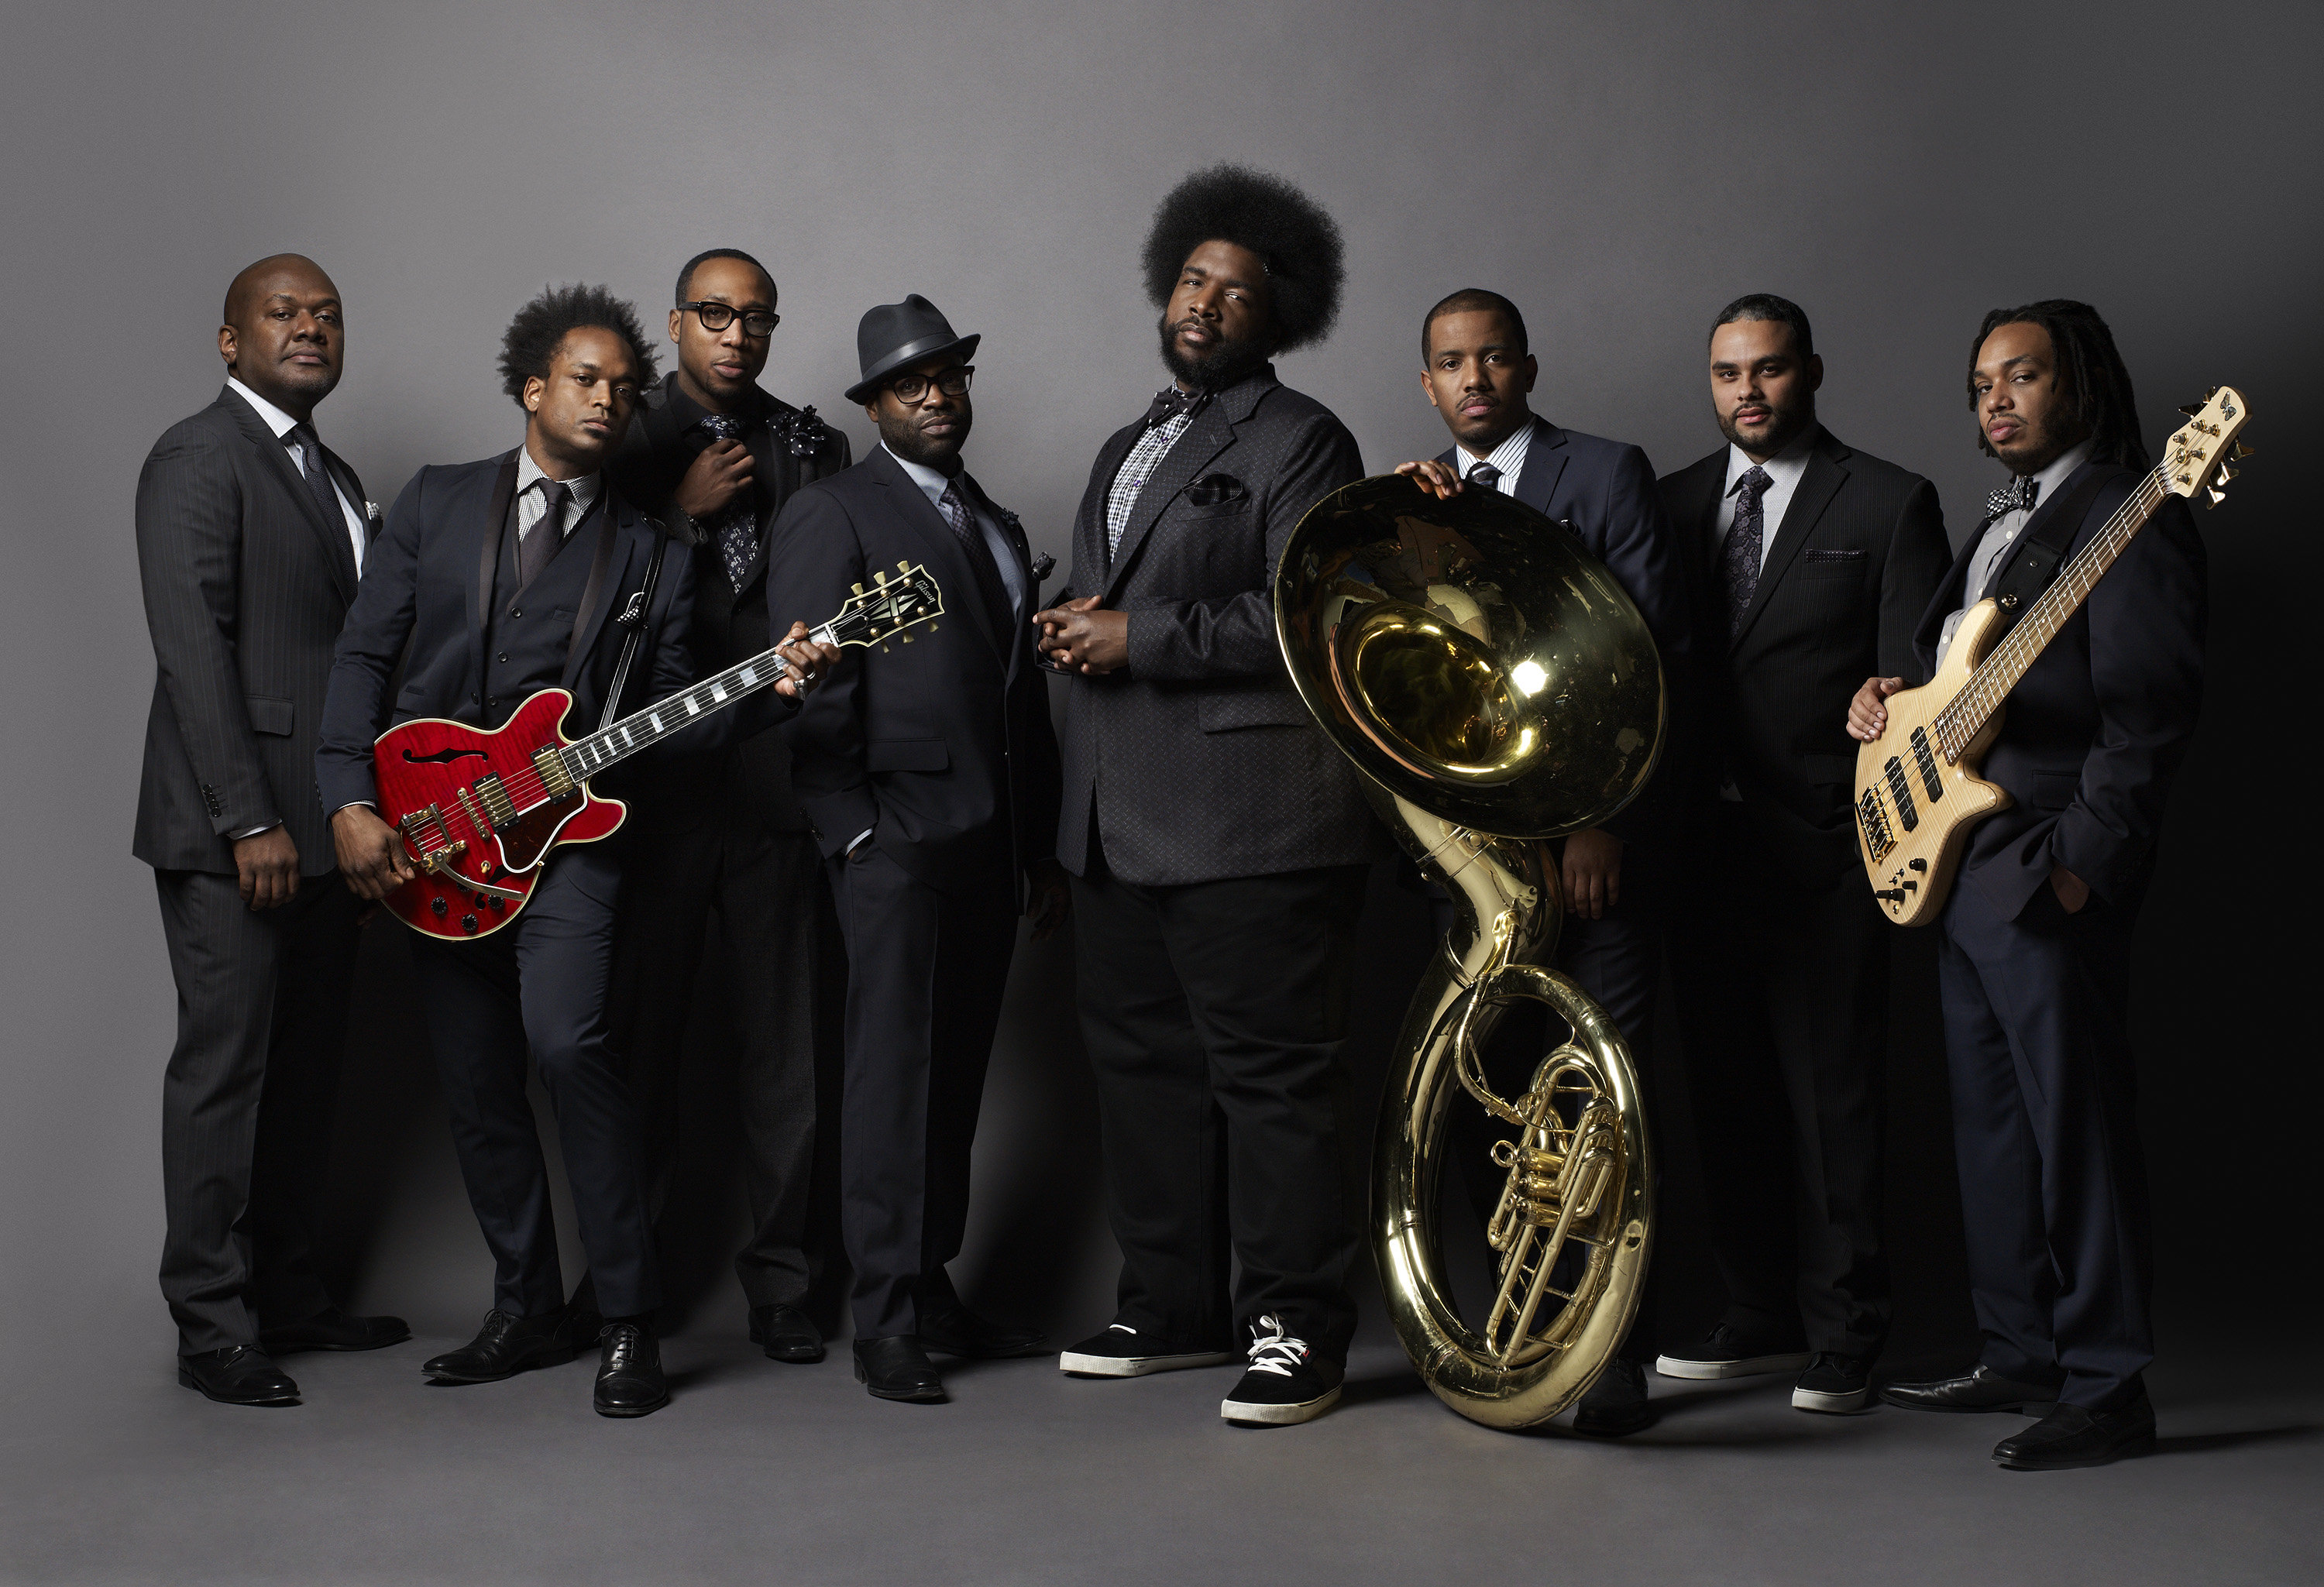 "THE TONIGHT SHOW STARRING JIMMY FALLON -- Season: 5 -- Pictured: (l-r) James Poyser, Kirk ""Captain Kirk"" Douglas, Frank ""Knuckles"" Walker, Tariq ""Black Thought"" Trotter, Ahmir ""?uestlove"" Thompson, Damon ""Tuba Gooding Jr."" Bryson, James ""Kamal"" Gray, Mark Kelley -- (Photo by: Mark Seliger/NBC)"